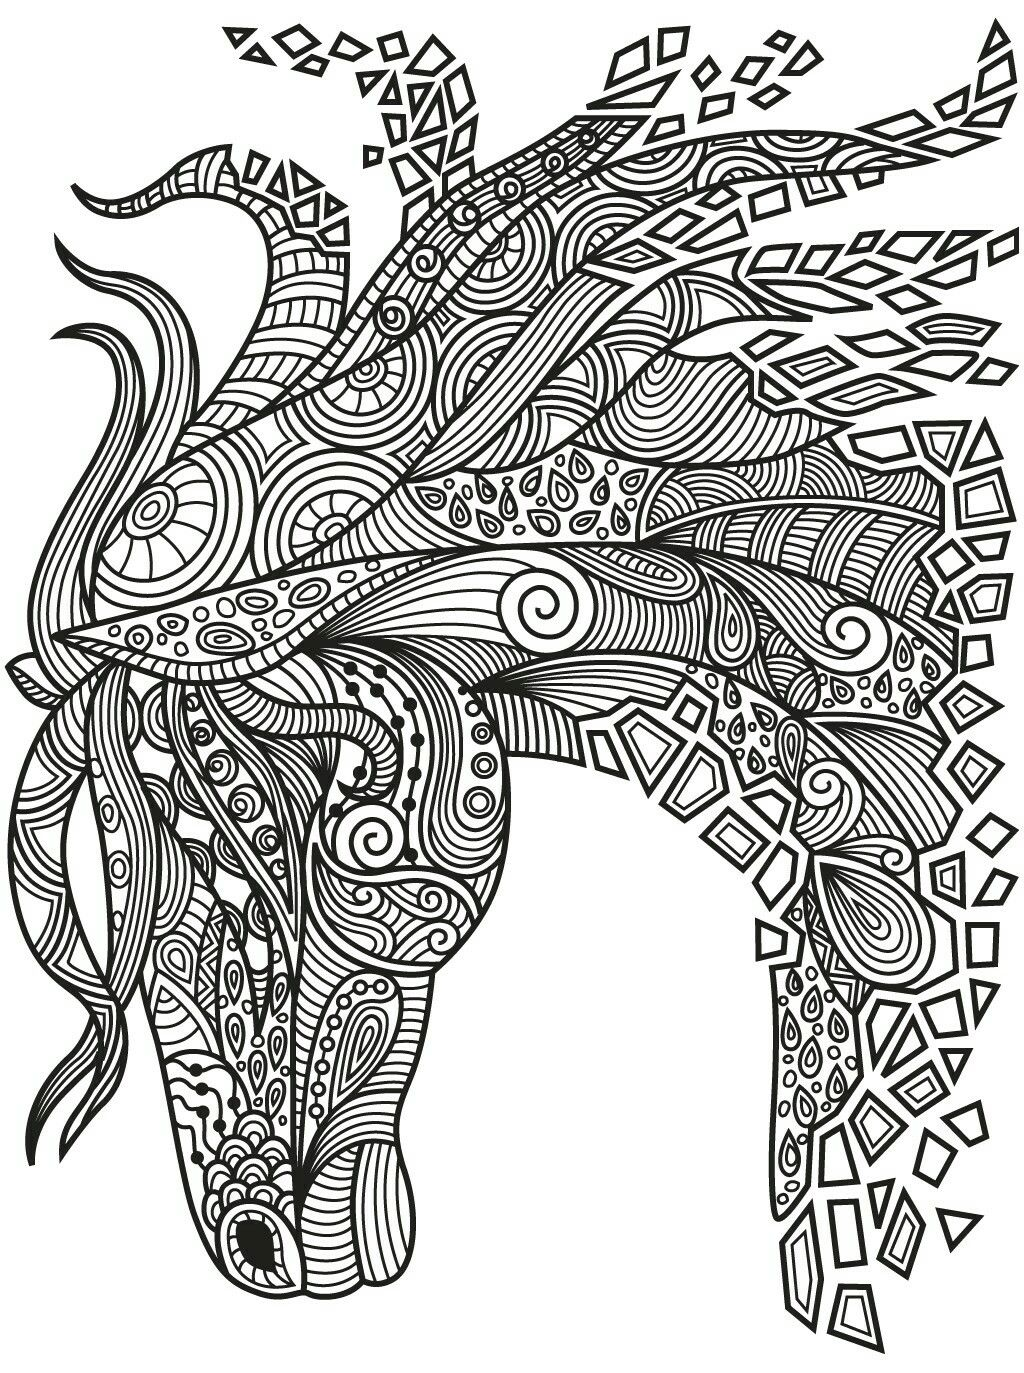 Beautiful zentangle horse | Colorish: coloring book app for adults ...